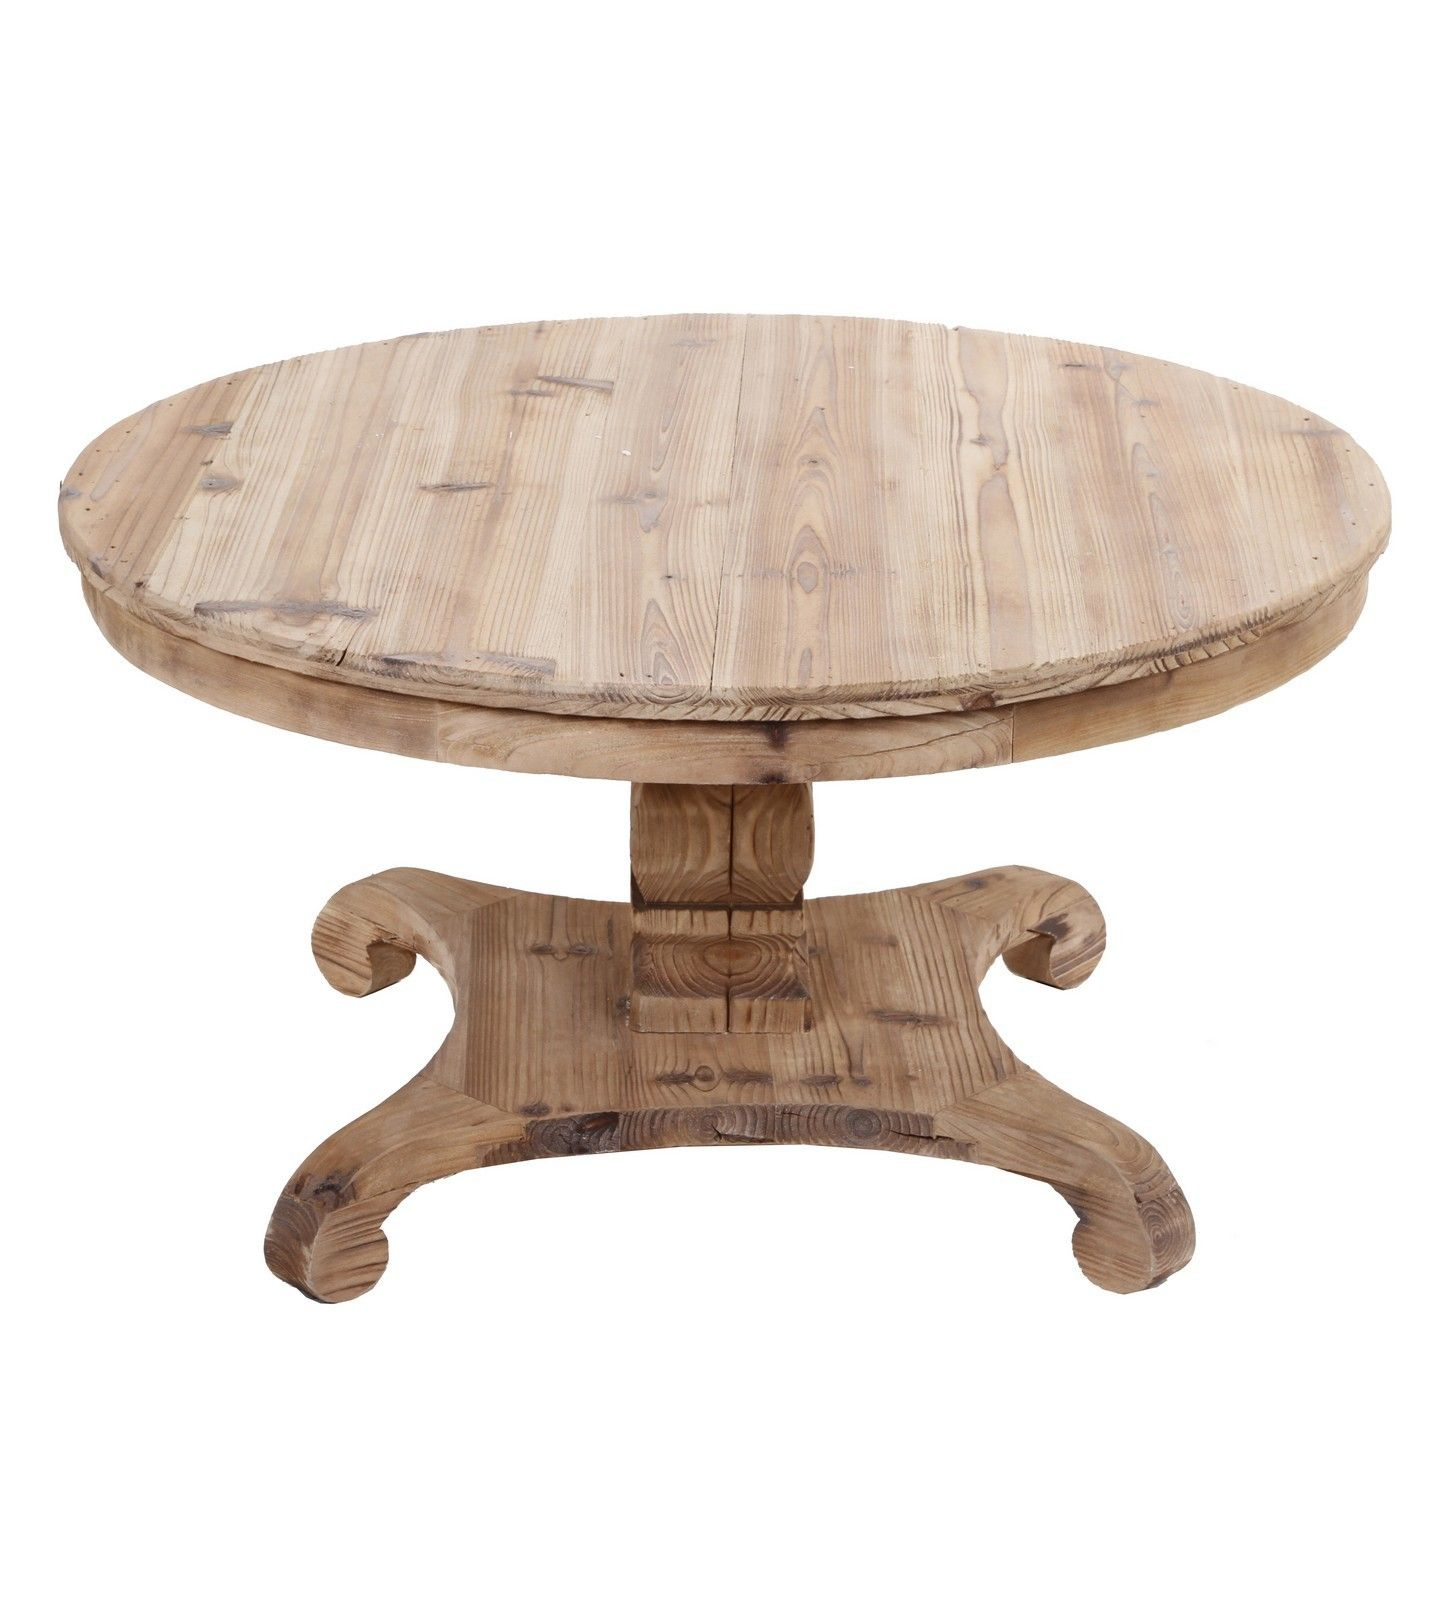 Privilege Coffee Table Wayfair Table Woodworking Plans - Wayfair reclaimed wood coffee table